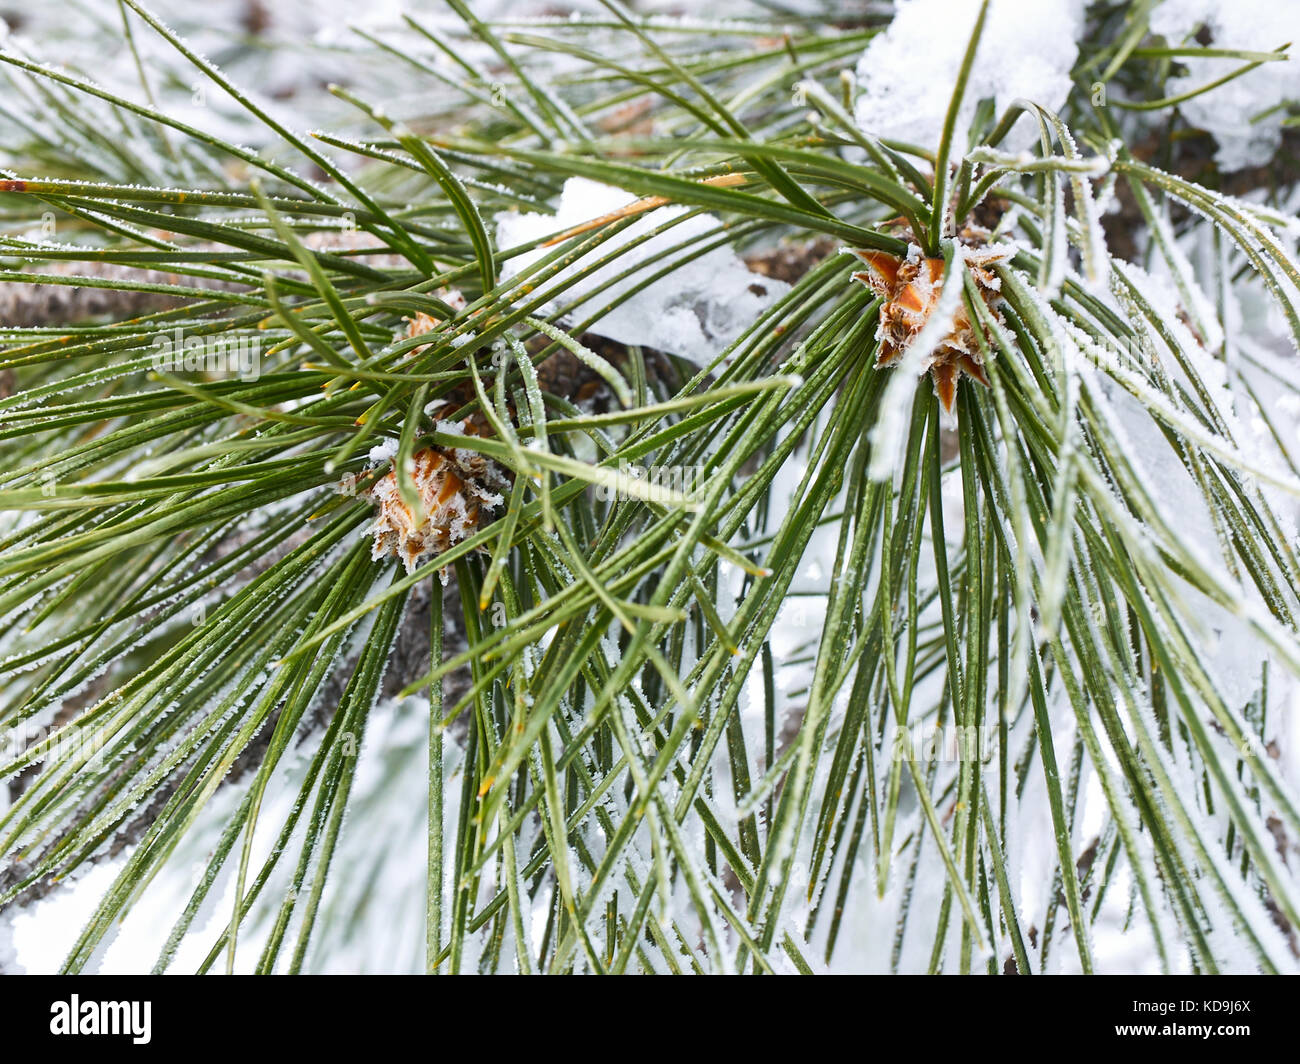 Snow rime on two long green needles of pine-tree with cones, close-up view Stock Photo